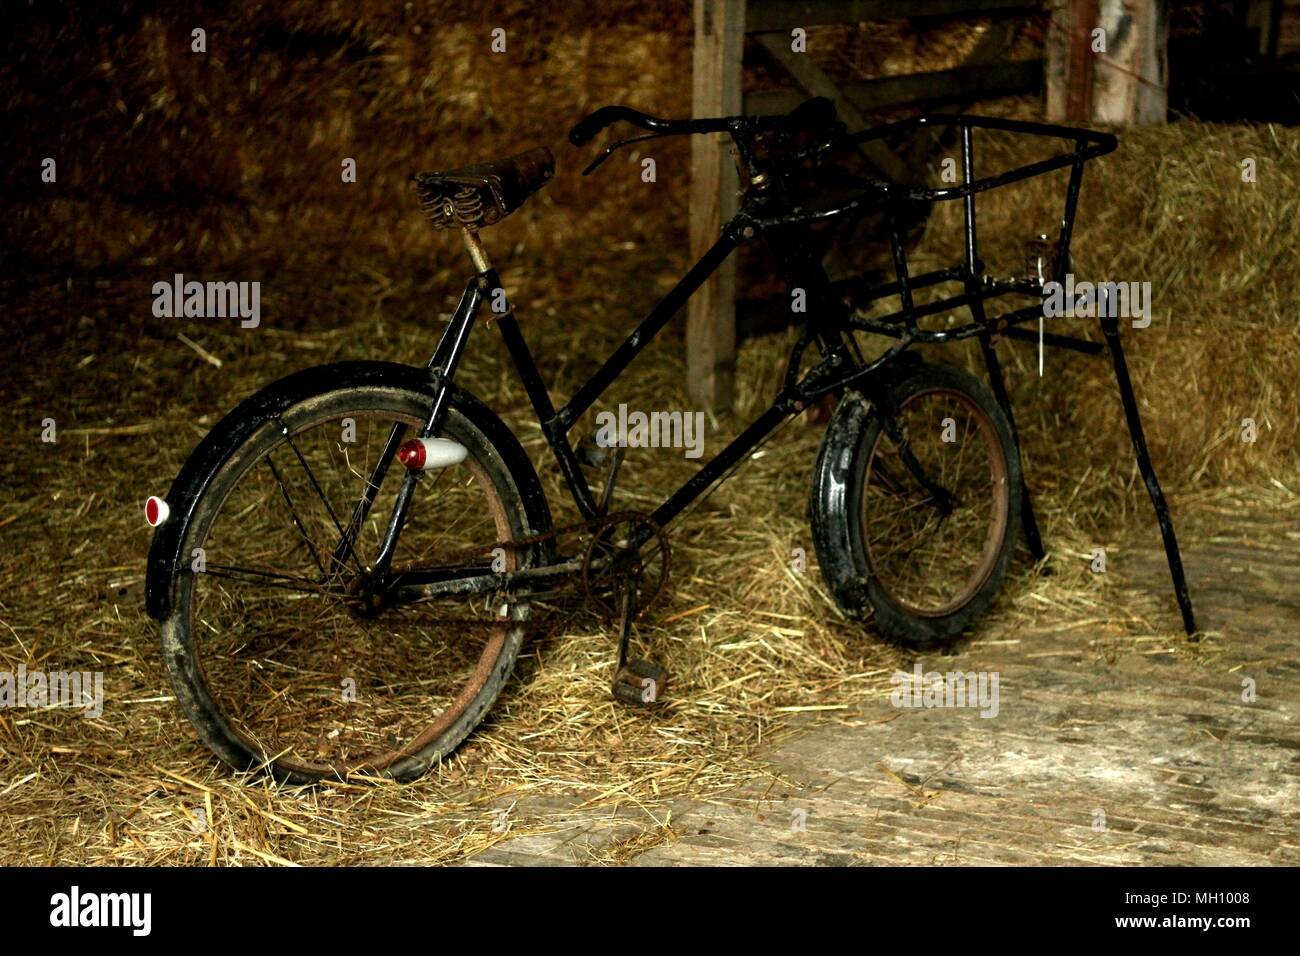 Period props from bygone era - vintage bicycle standing in hay barn. - Stock Image